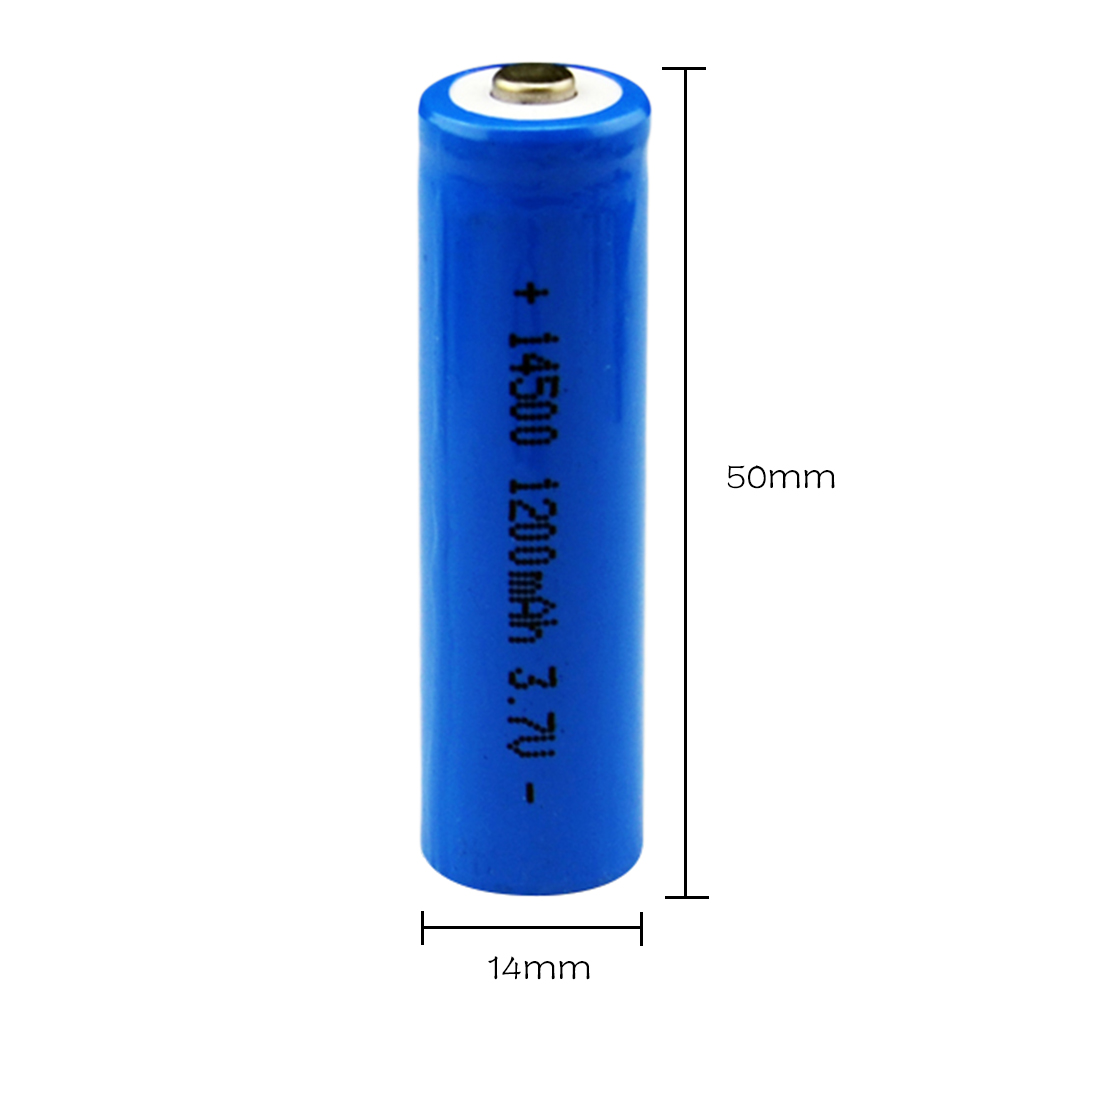 Centechia 8 pcs High Capacitance 14500 Battery 3.7V 1300mAh Rechargeable Battery for Led Flashlight Batery Battery Newest